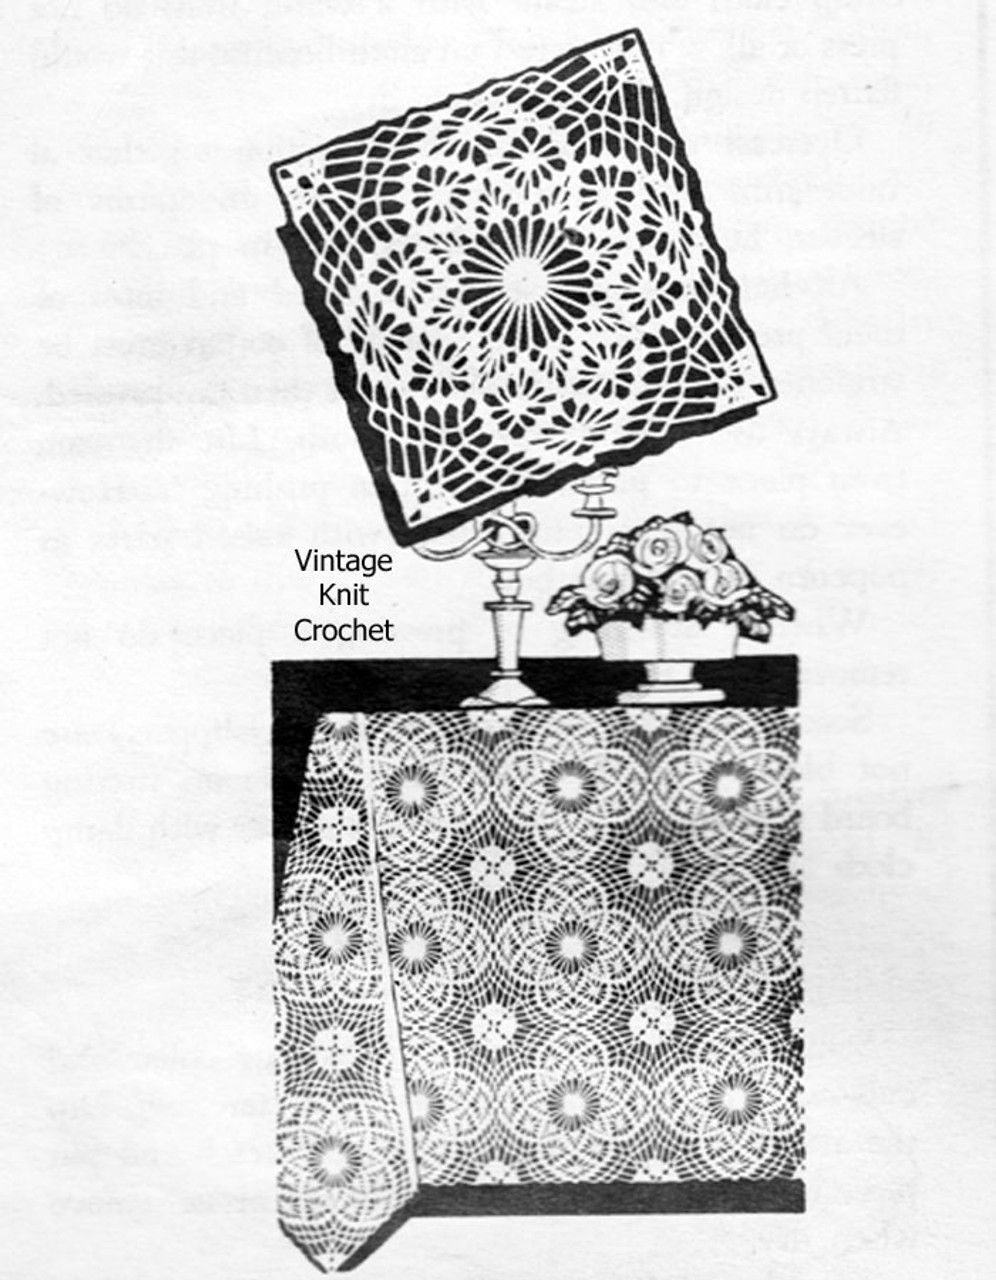 Vintage Crochet Tablecloth Square Pattern, American Weekly 3137